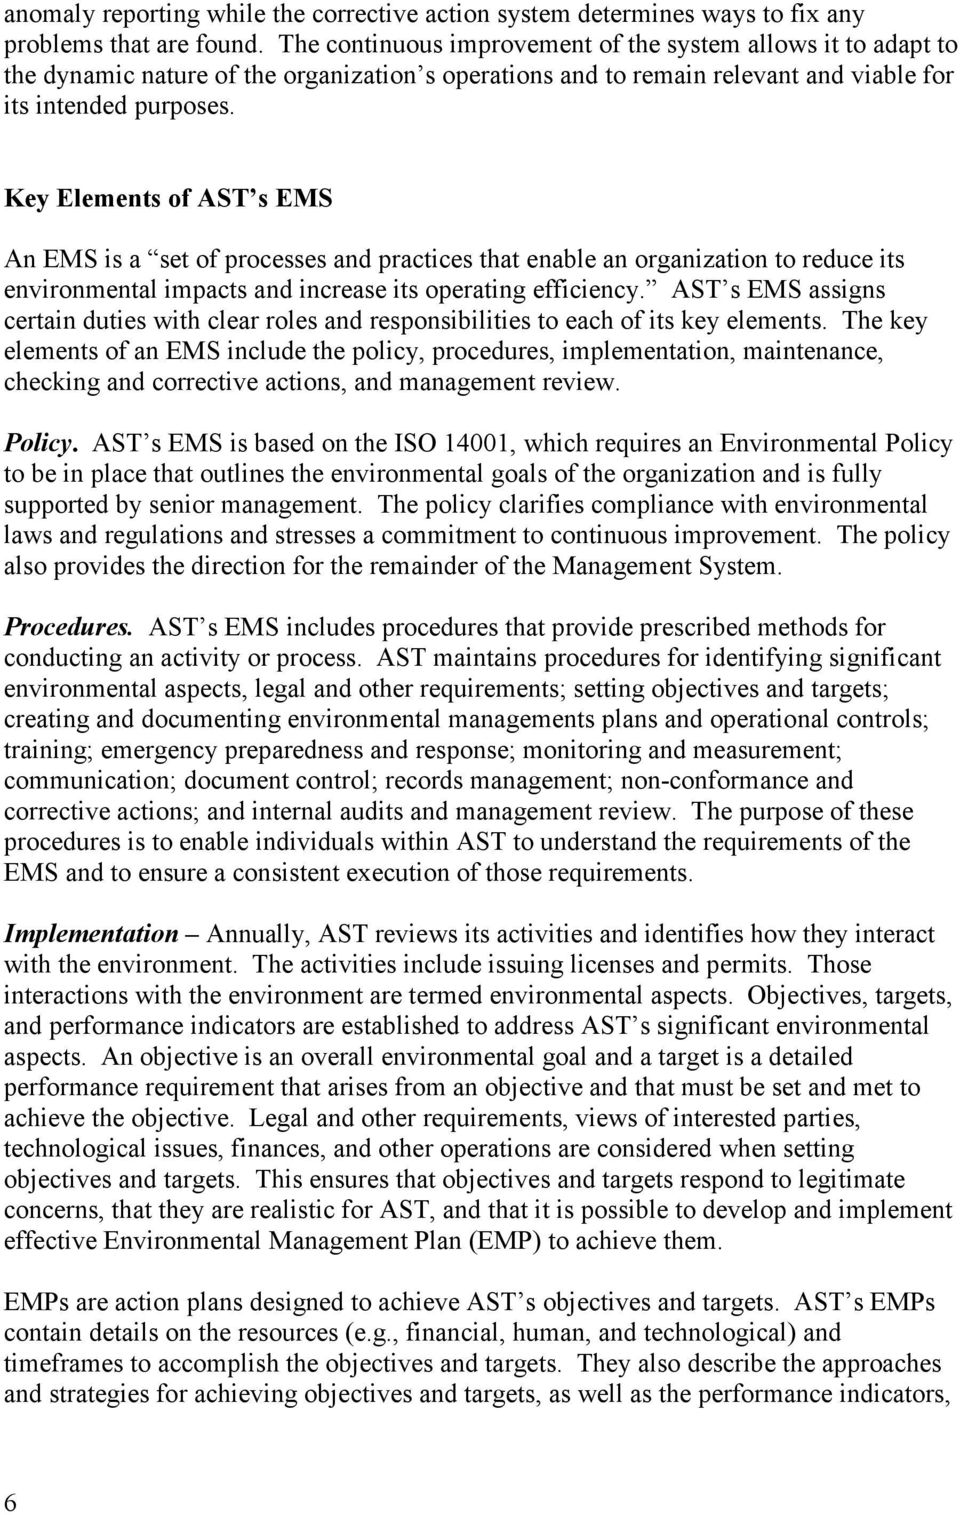 Key Elements of AST s EMS An EMS is a set of processes and practices that enable an organization to reduce its environmental impacts and increase its operating efficiency.